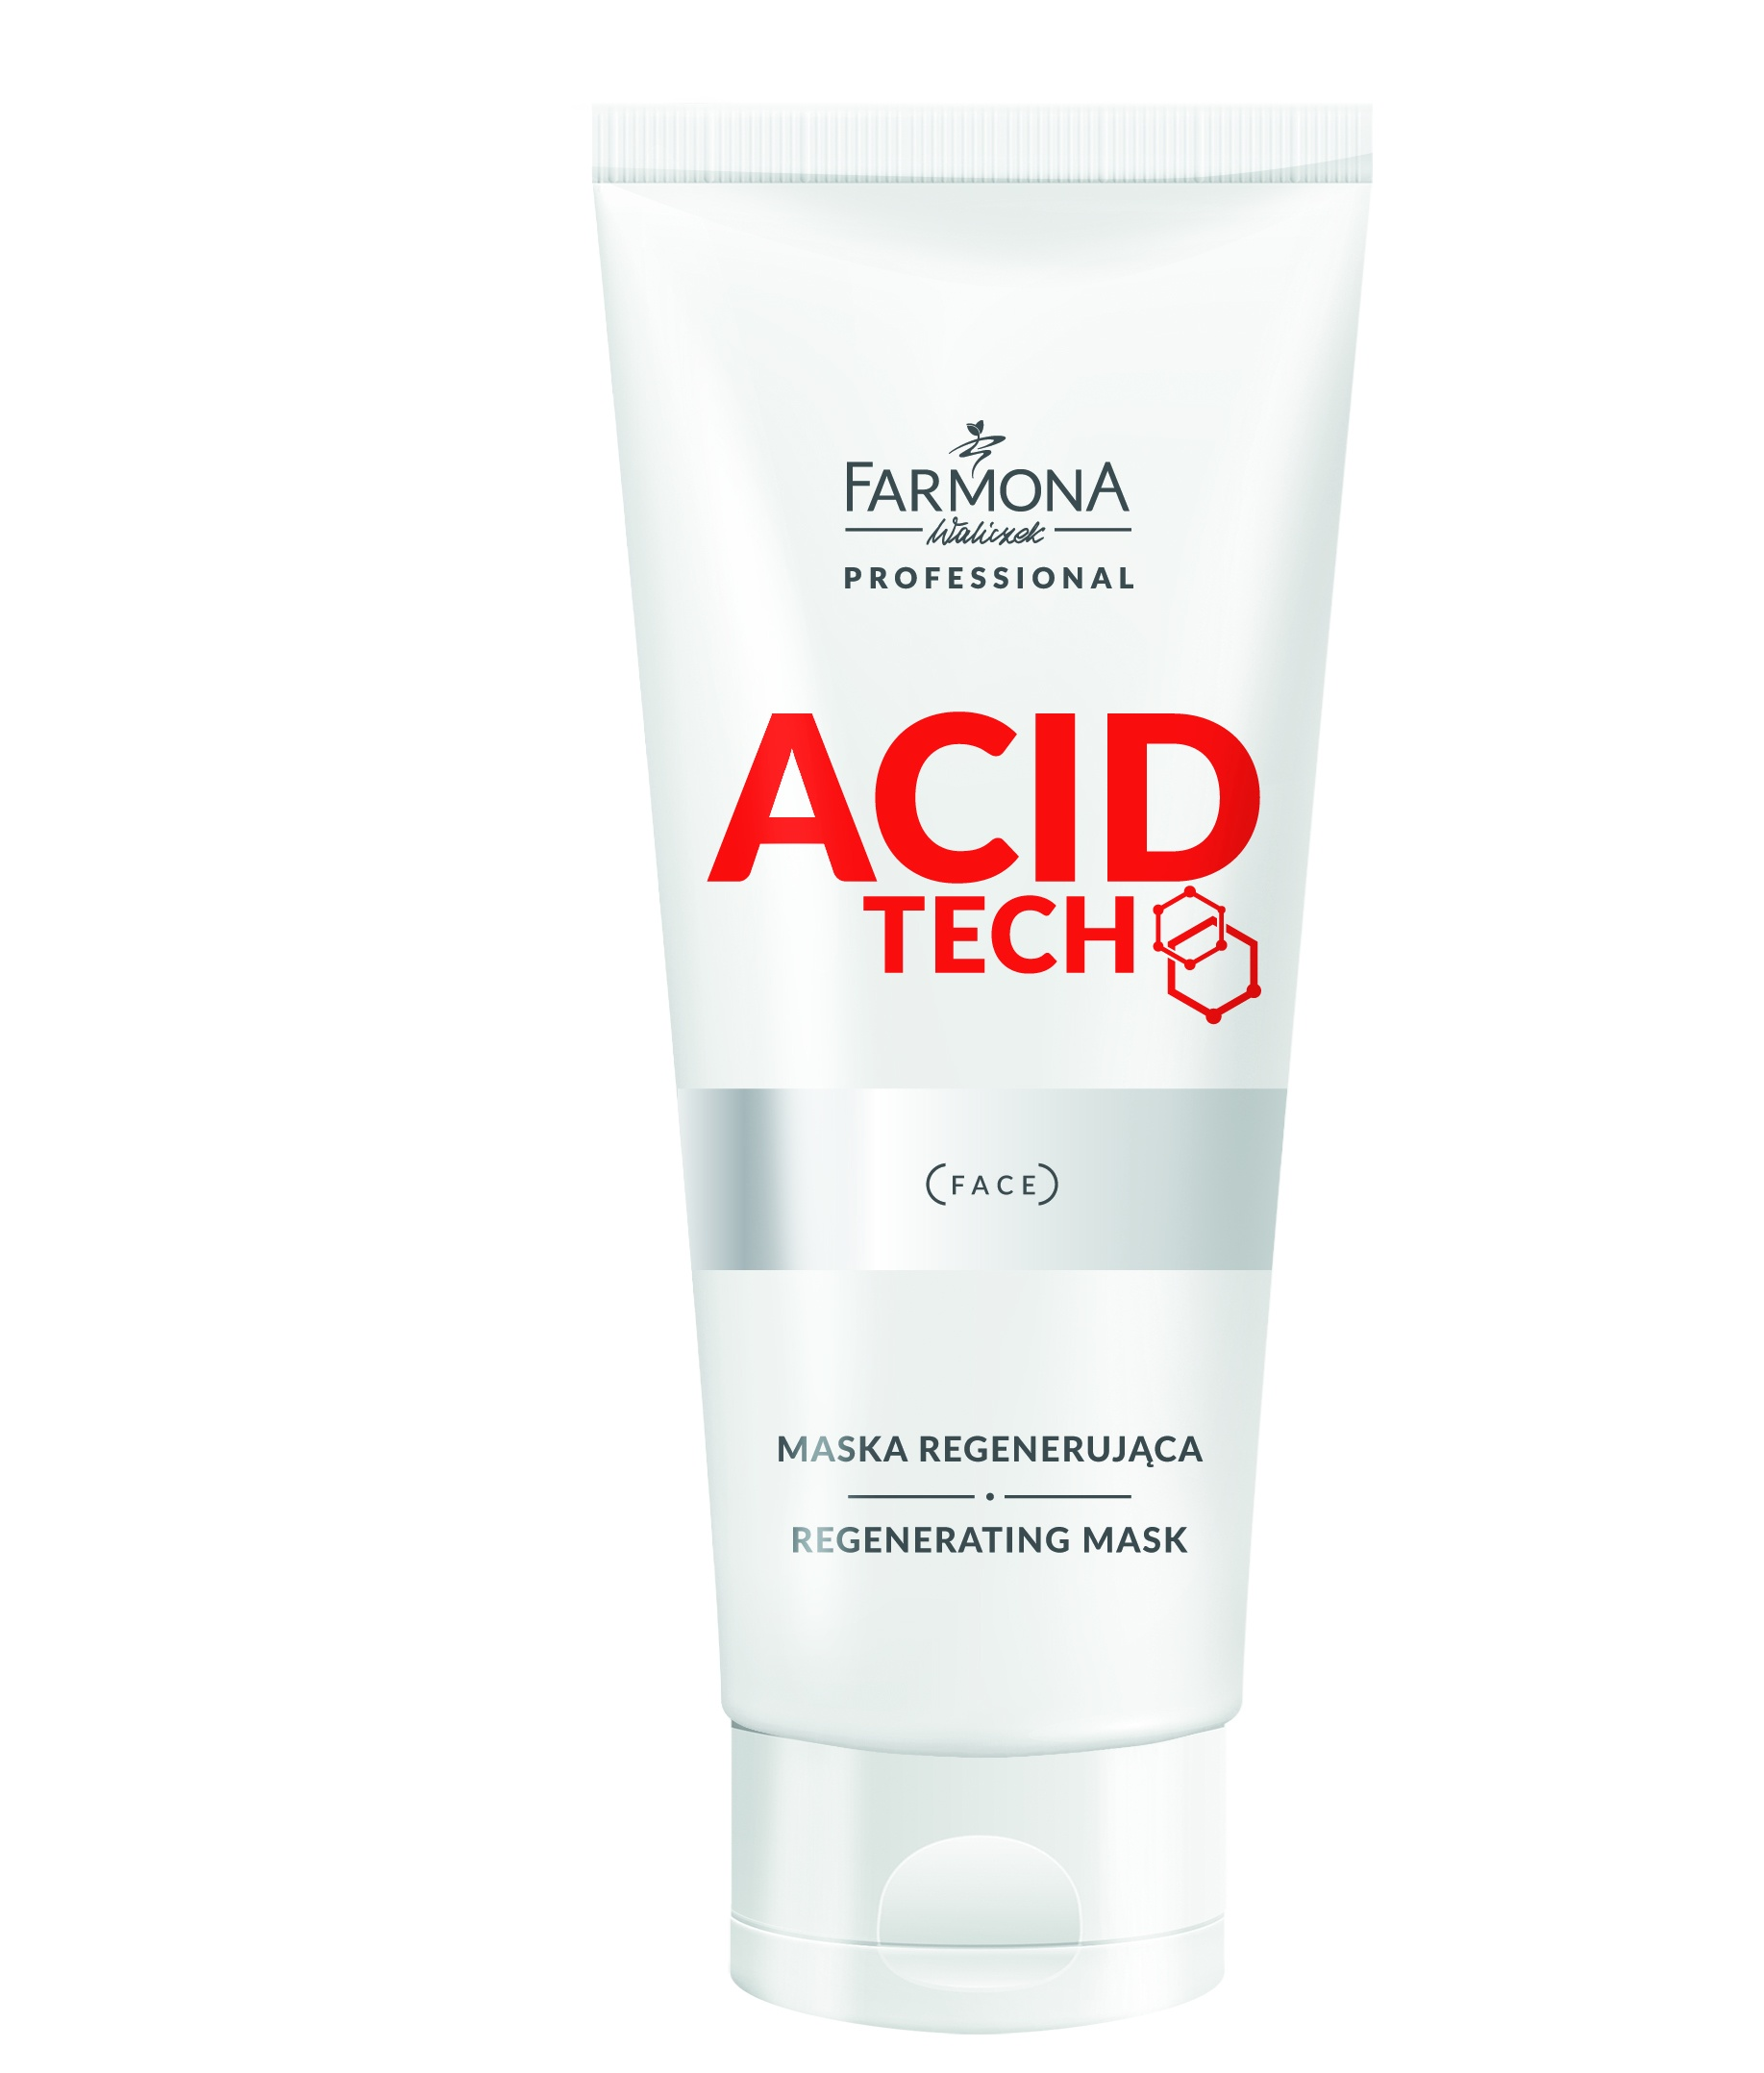 Farmona - Acid Tech - Maska regenerująca 200 ml